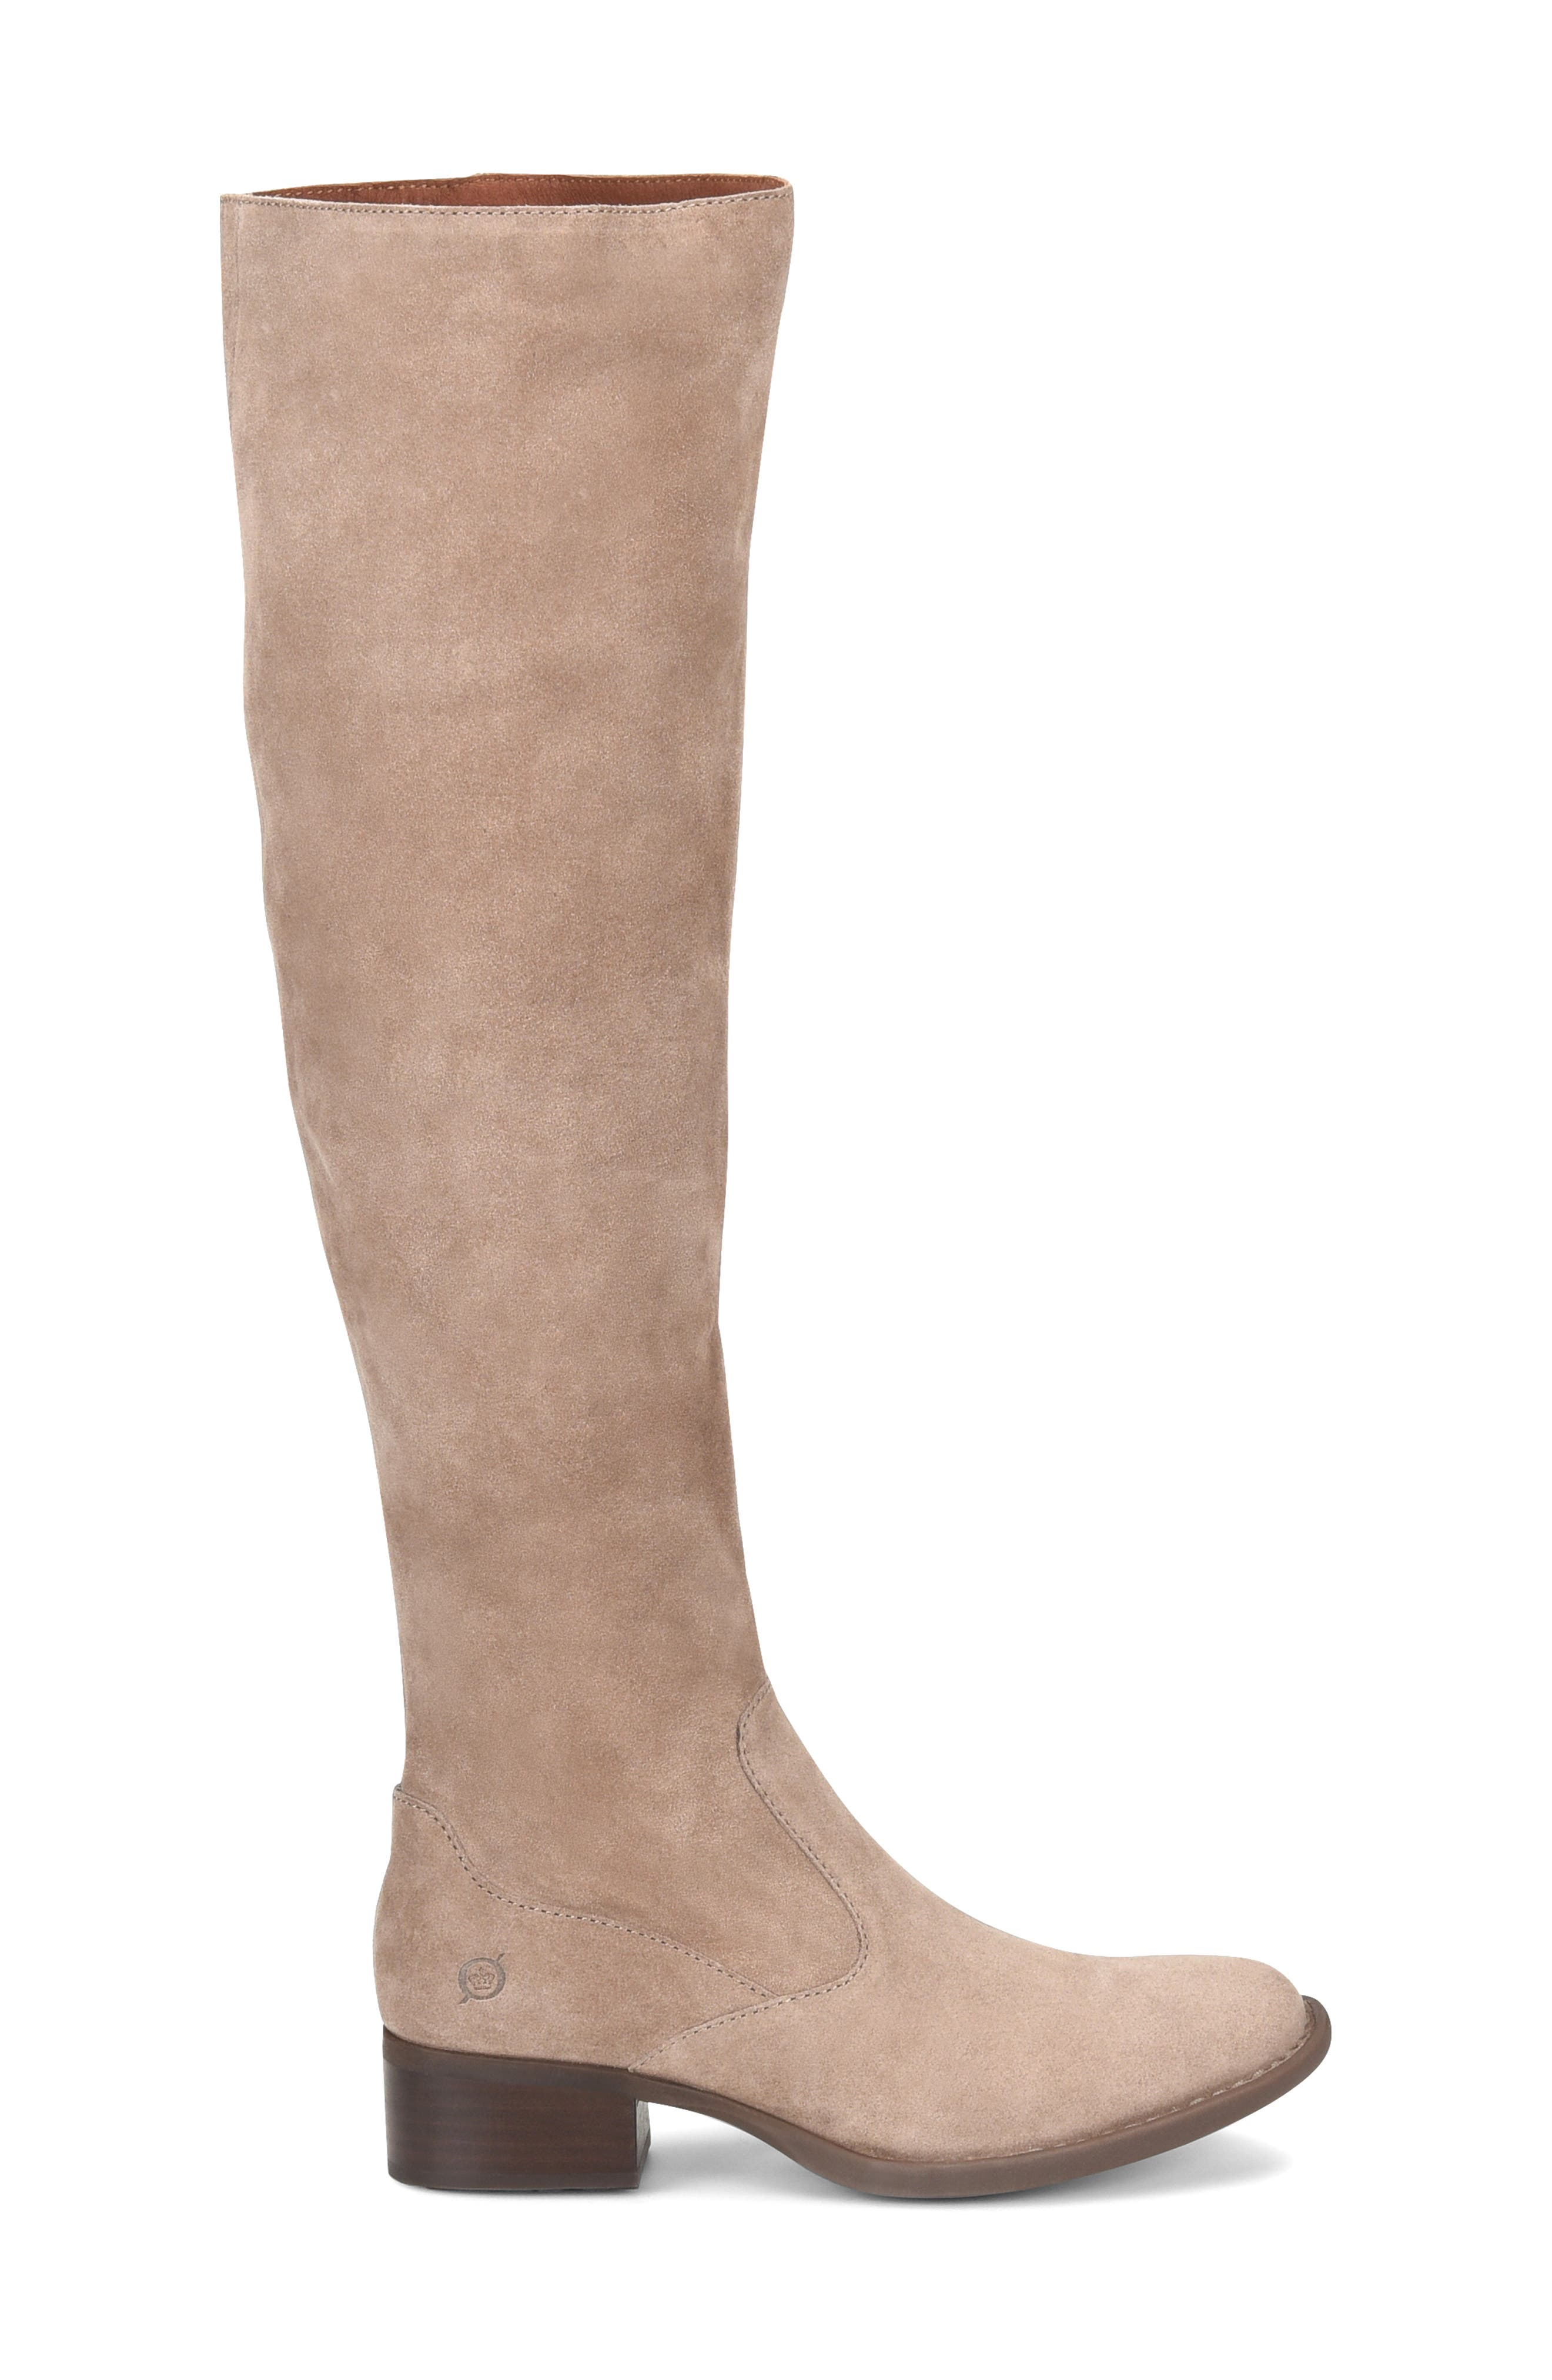 Cricket Over the Knee Boot,                             Alternate thumbnail 3, color,                             TAUPE SUEDE